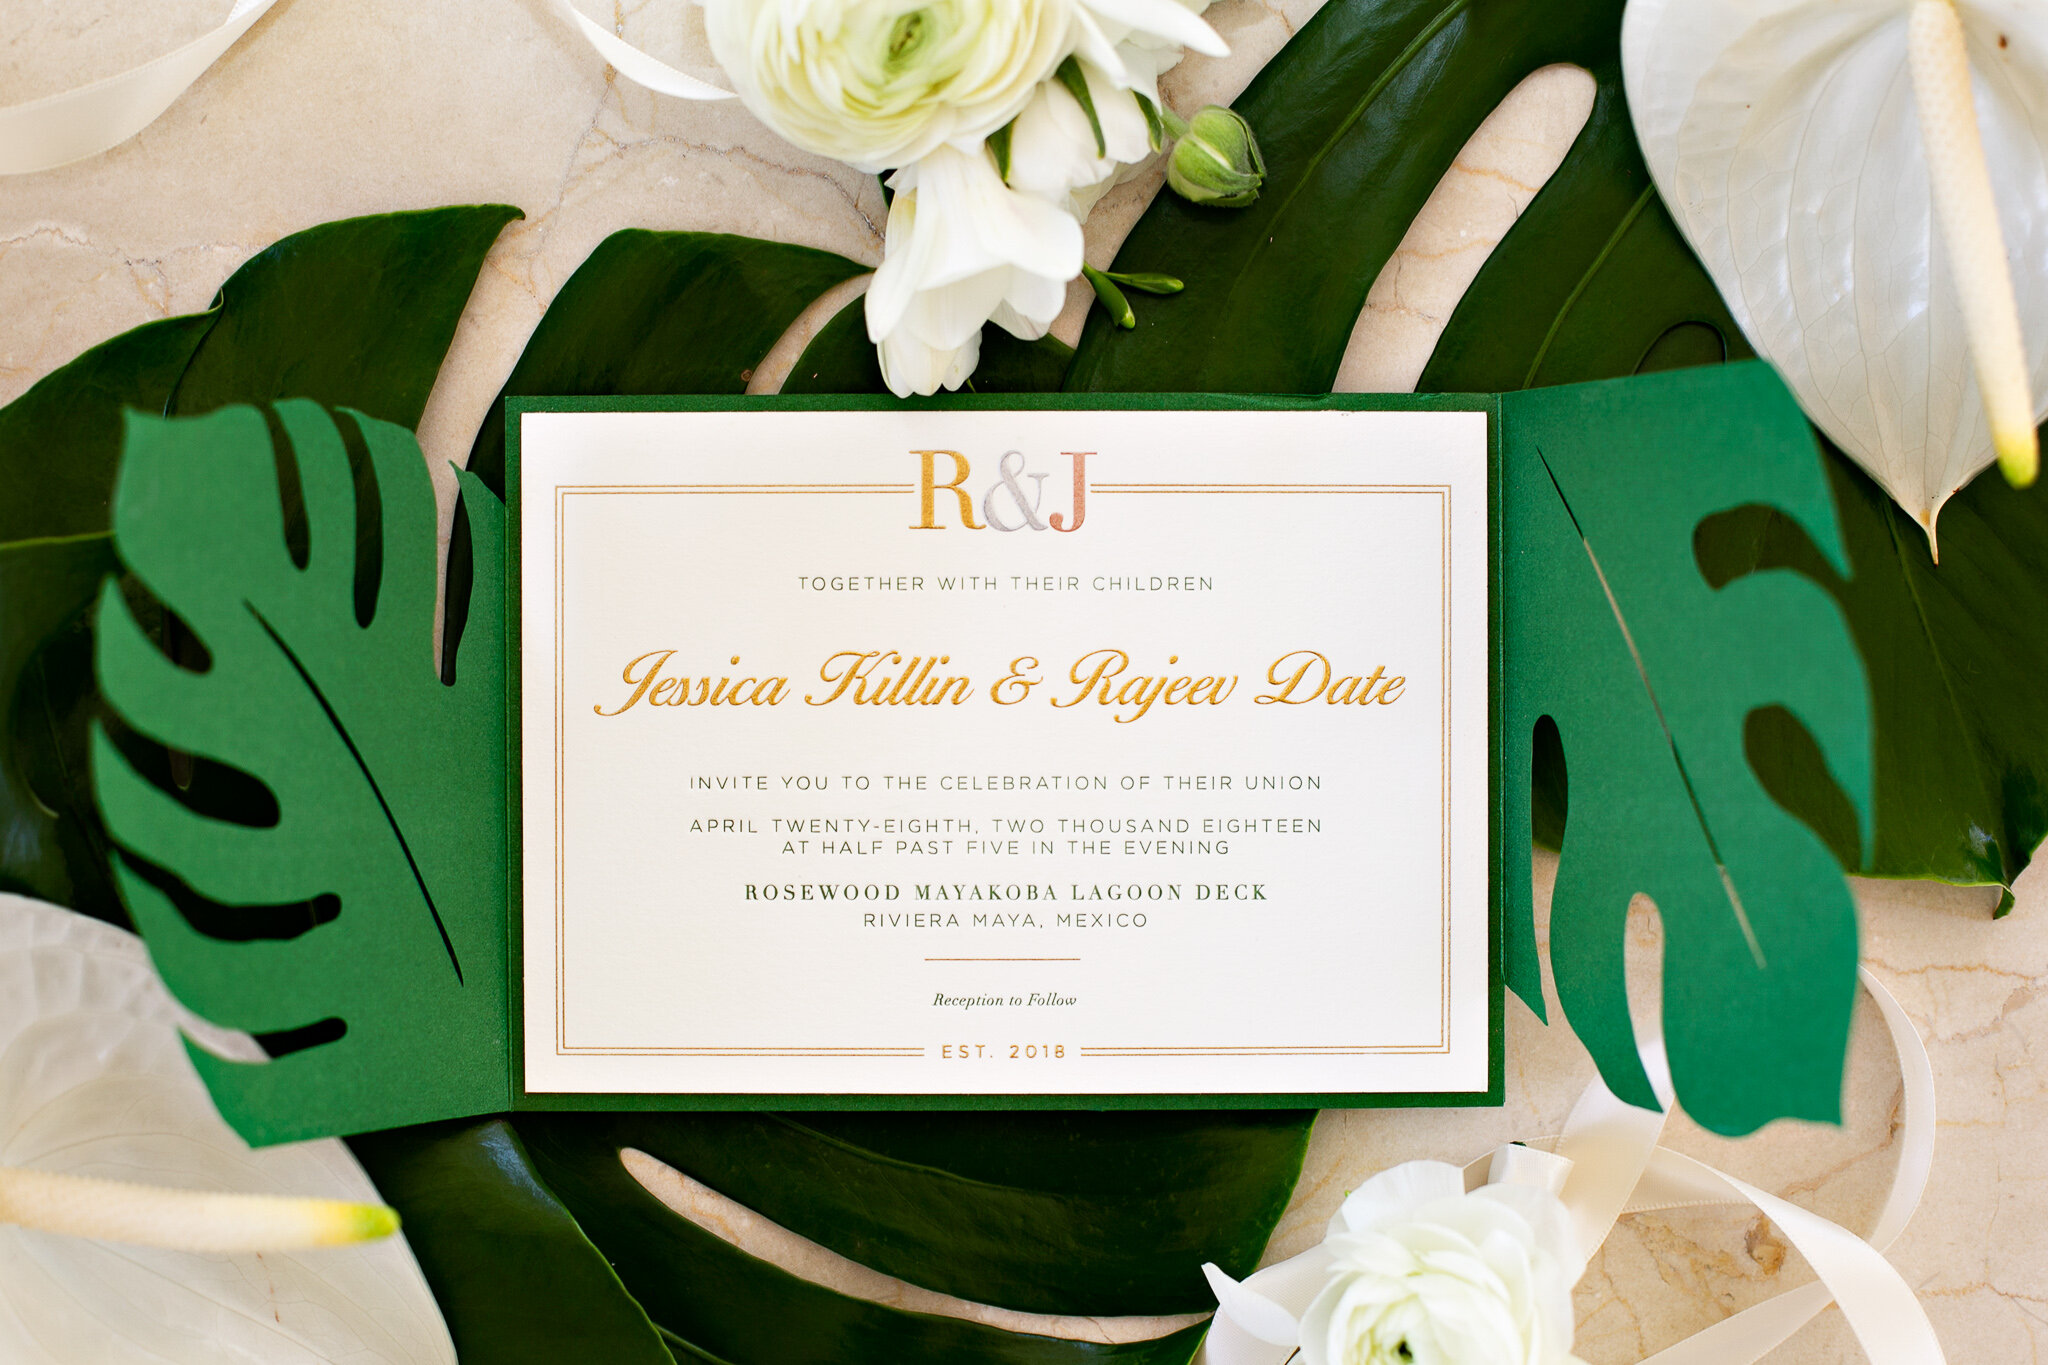 TypeA_Invitations_CustomWeddingInvitations_DestinationWedding_Mexico_0199.jpg